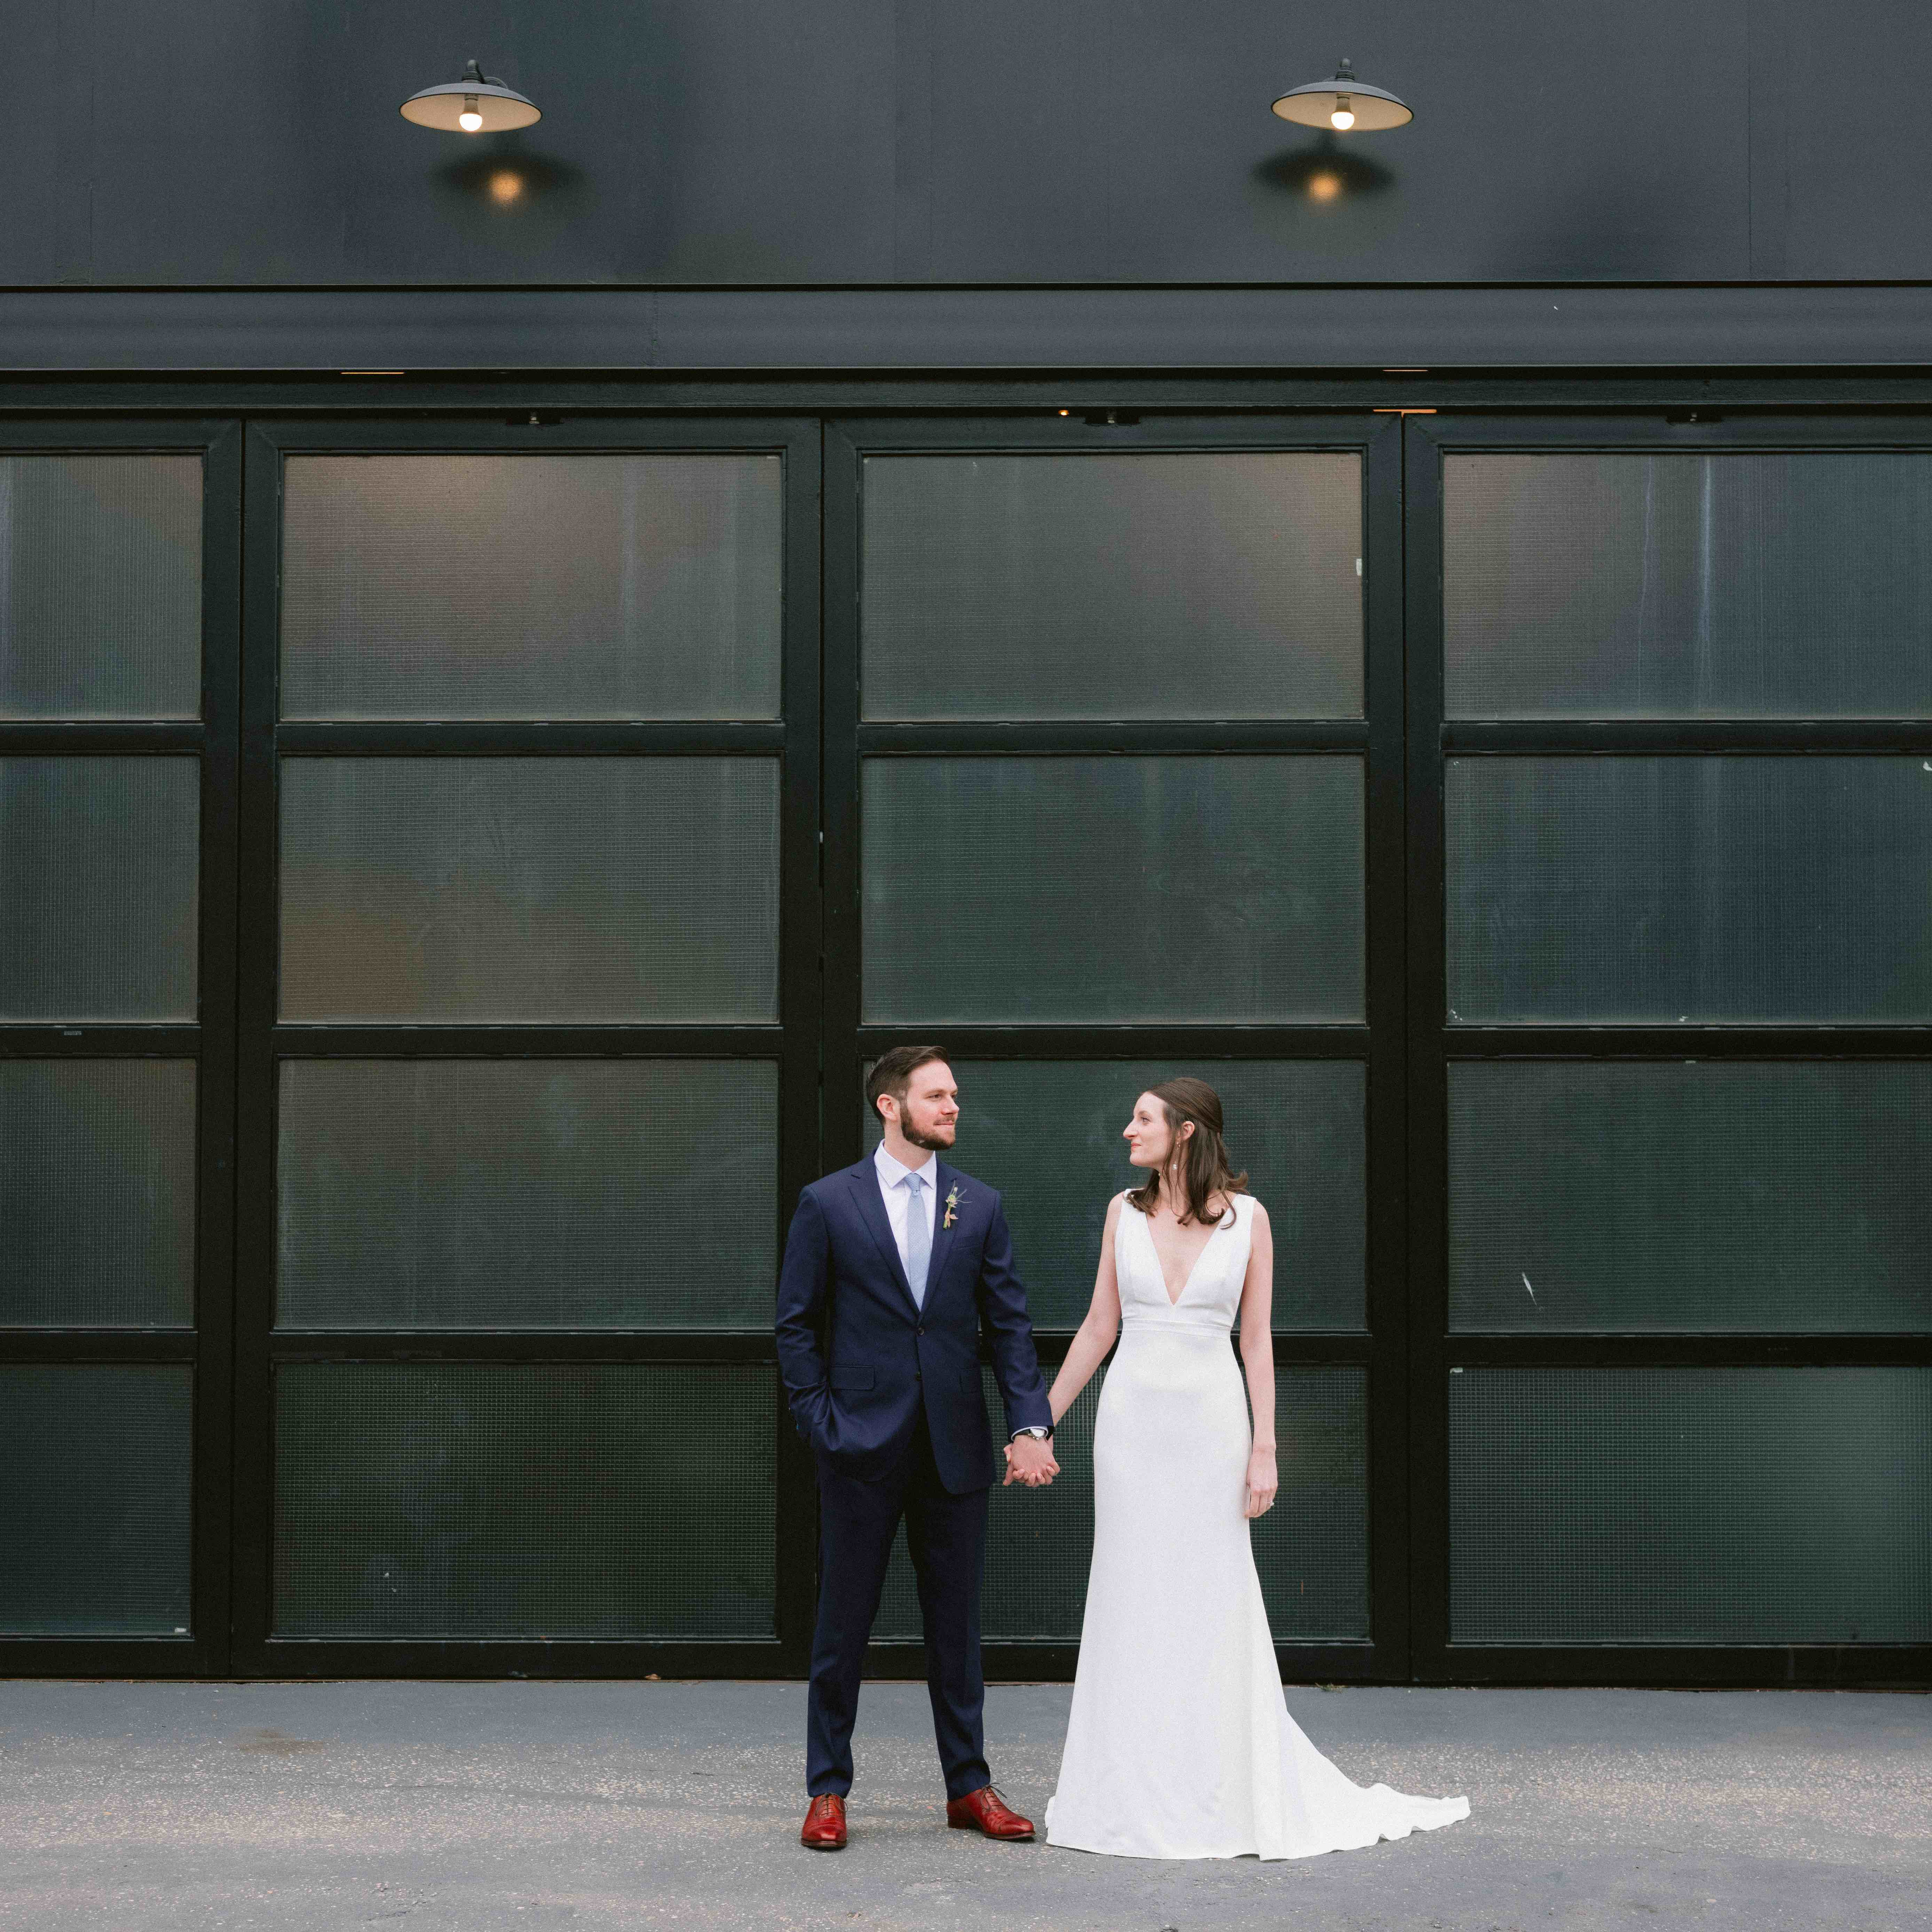 Best-501-Union-Wedding-Photography-Brooklyn-New-York10